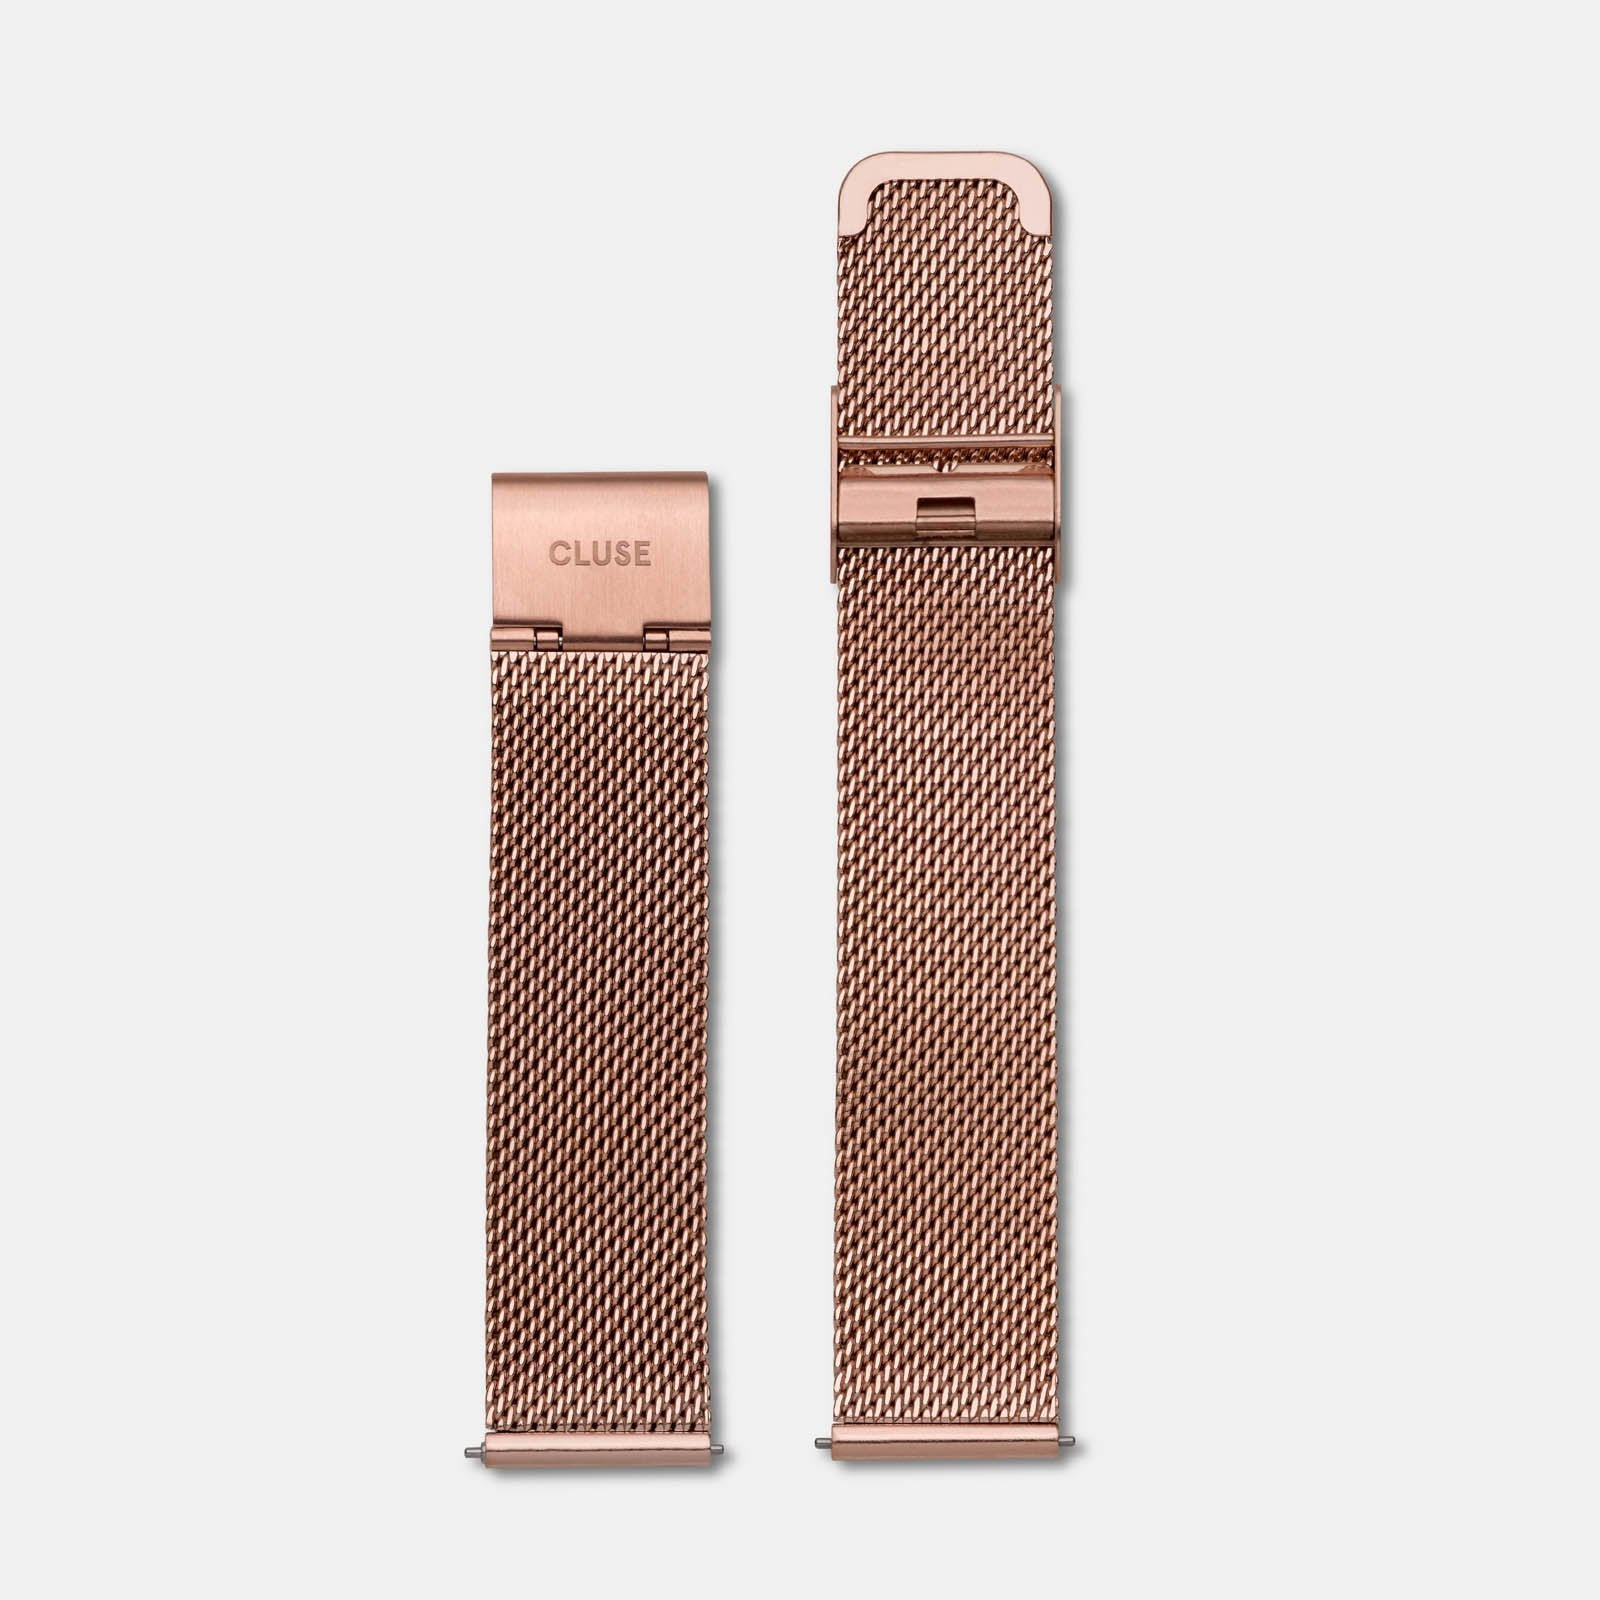 CLUSE 18 mm Strap Mesh Rose Gold CLS047 - strap